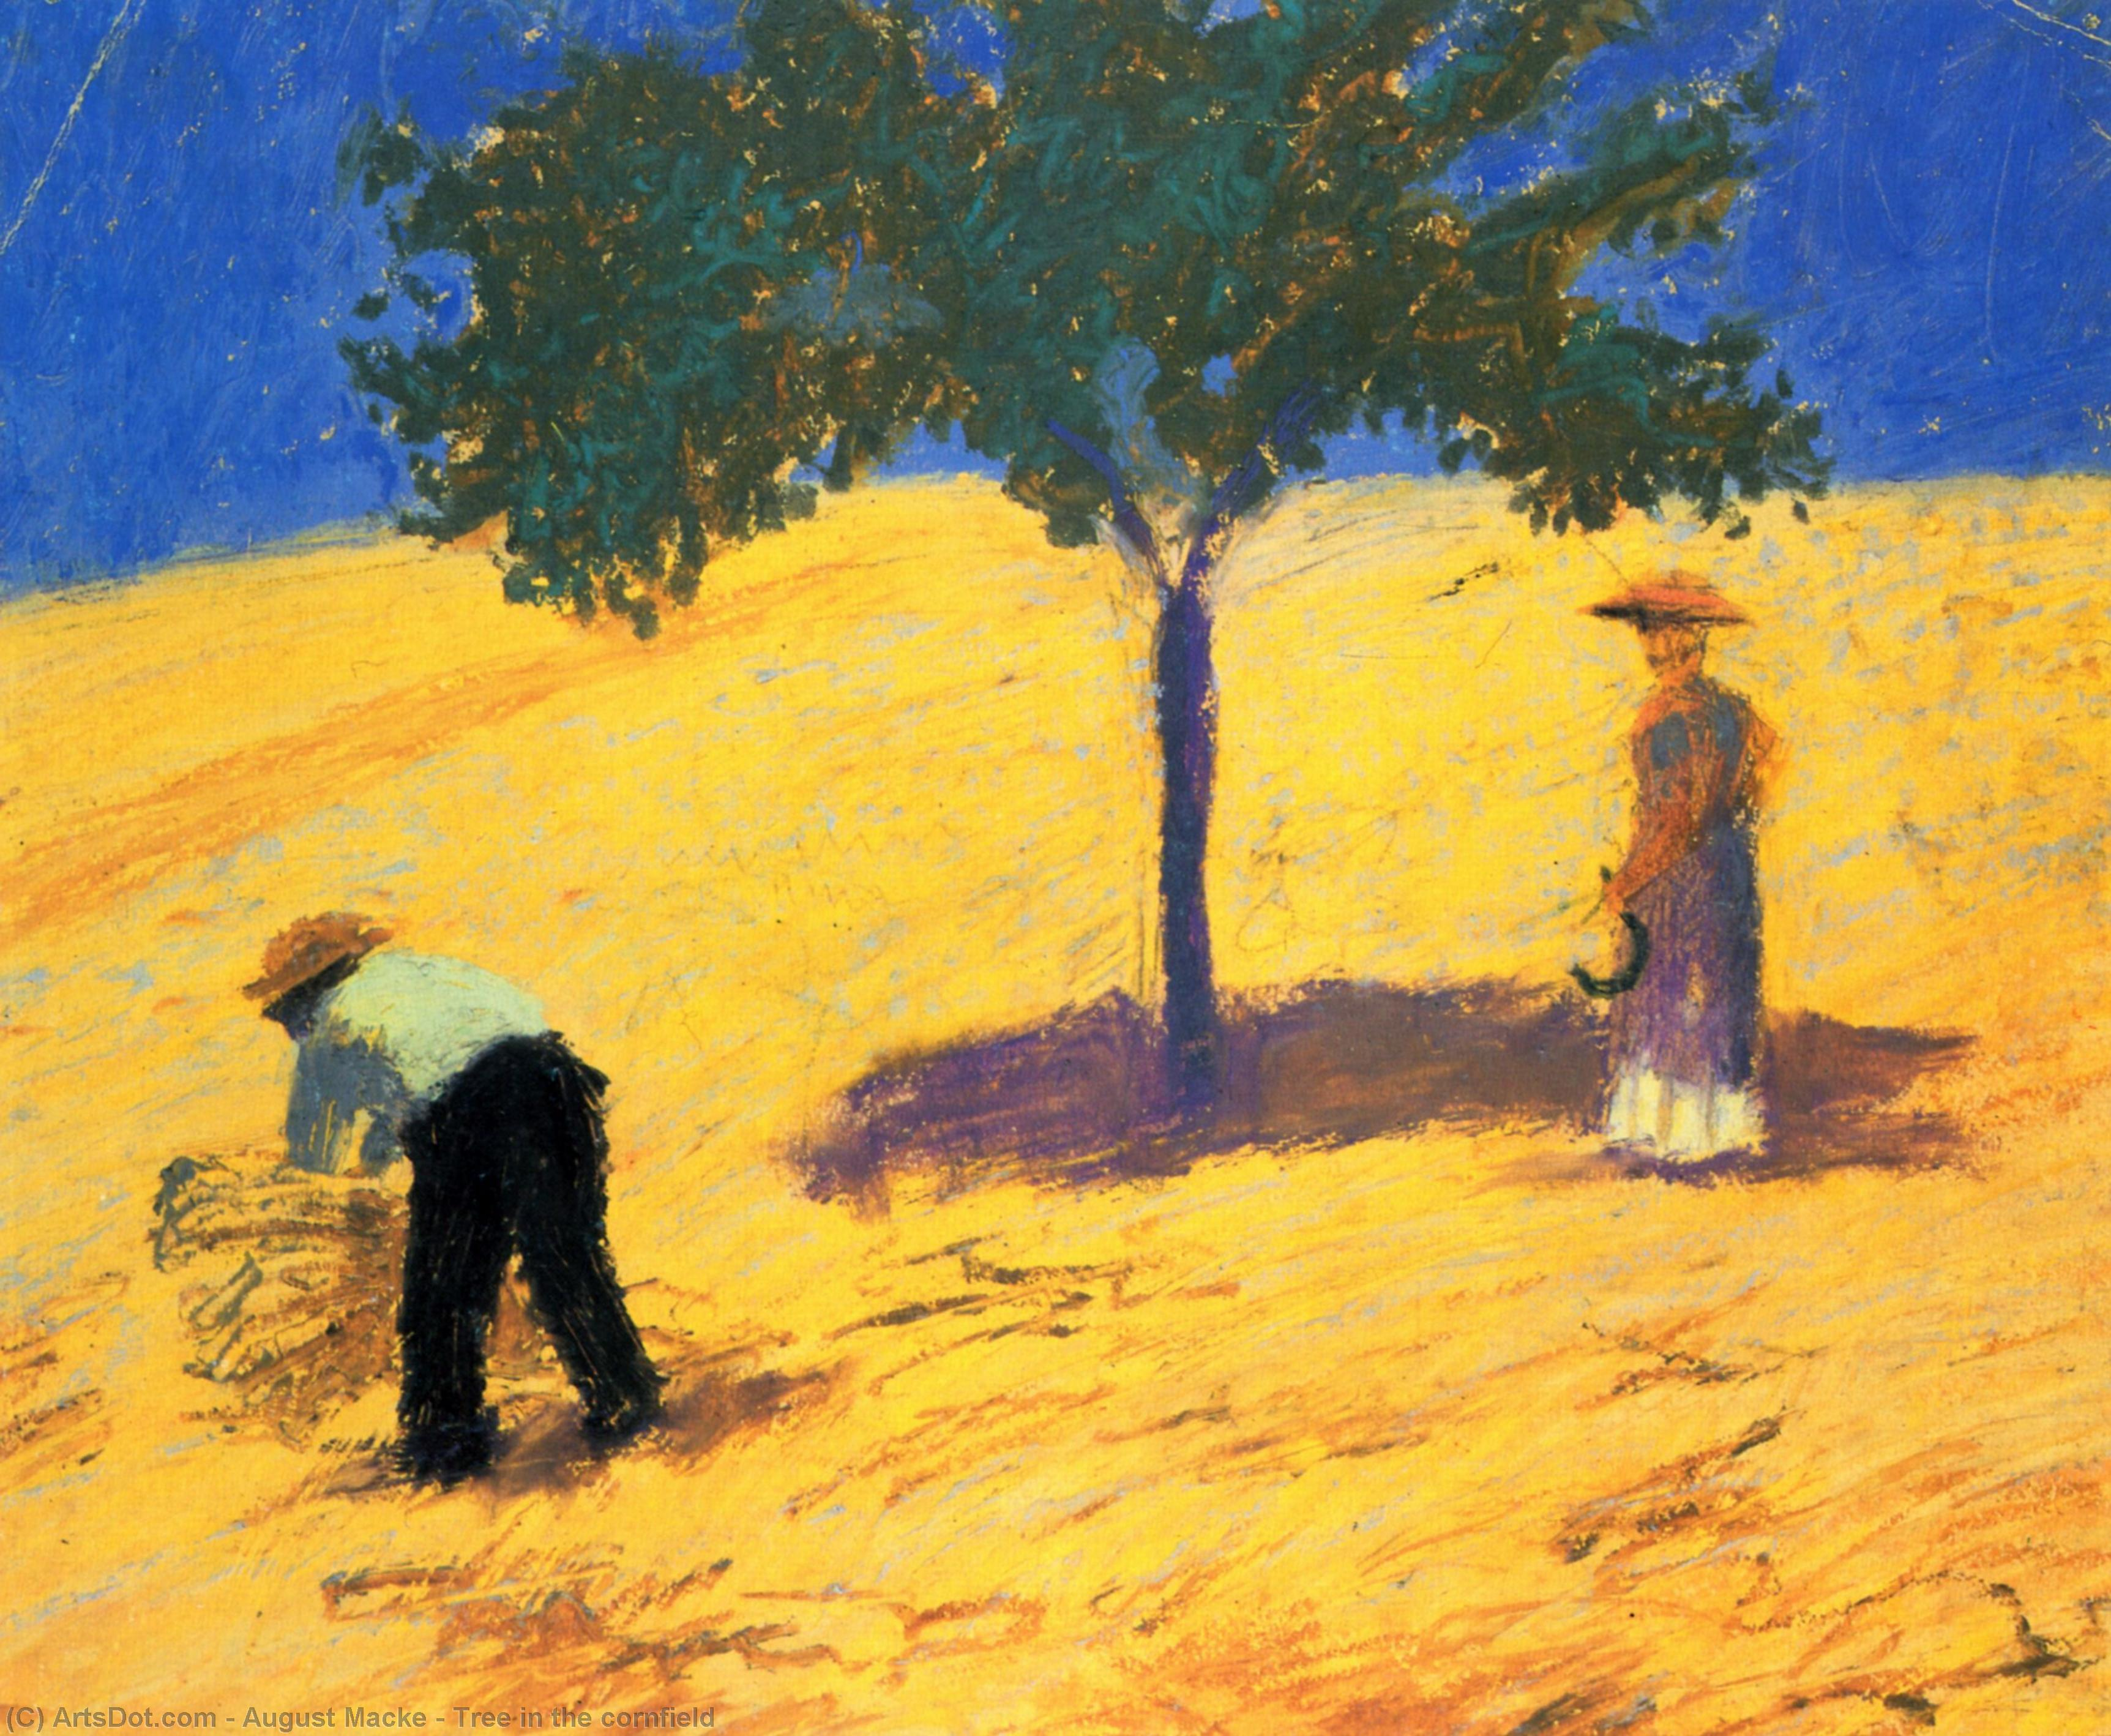 Wikioo.org - The Encyclopedia of Fine Arts - Painting, Artwork by August Macke - Treein the cornfield